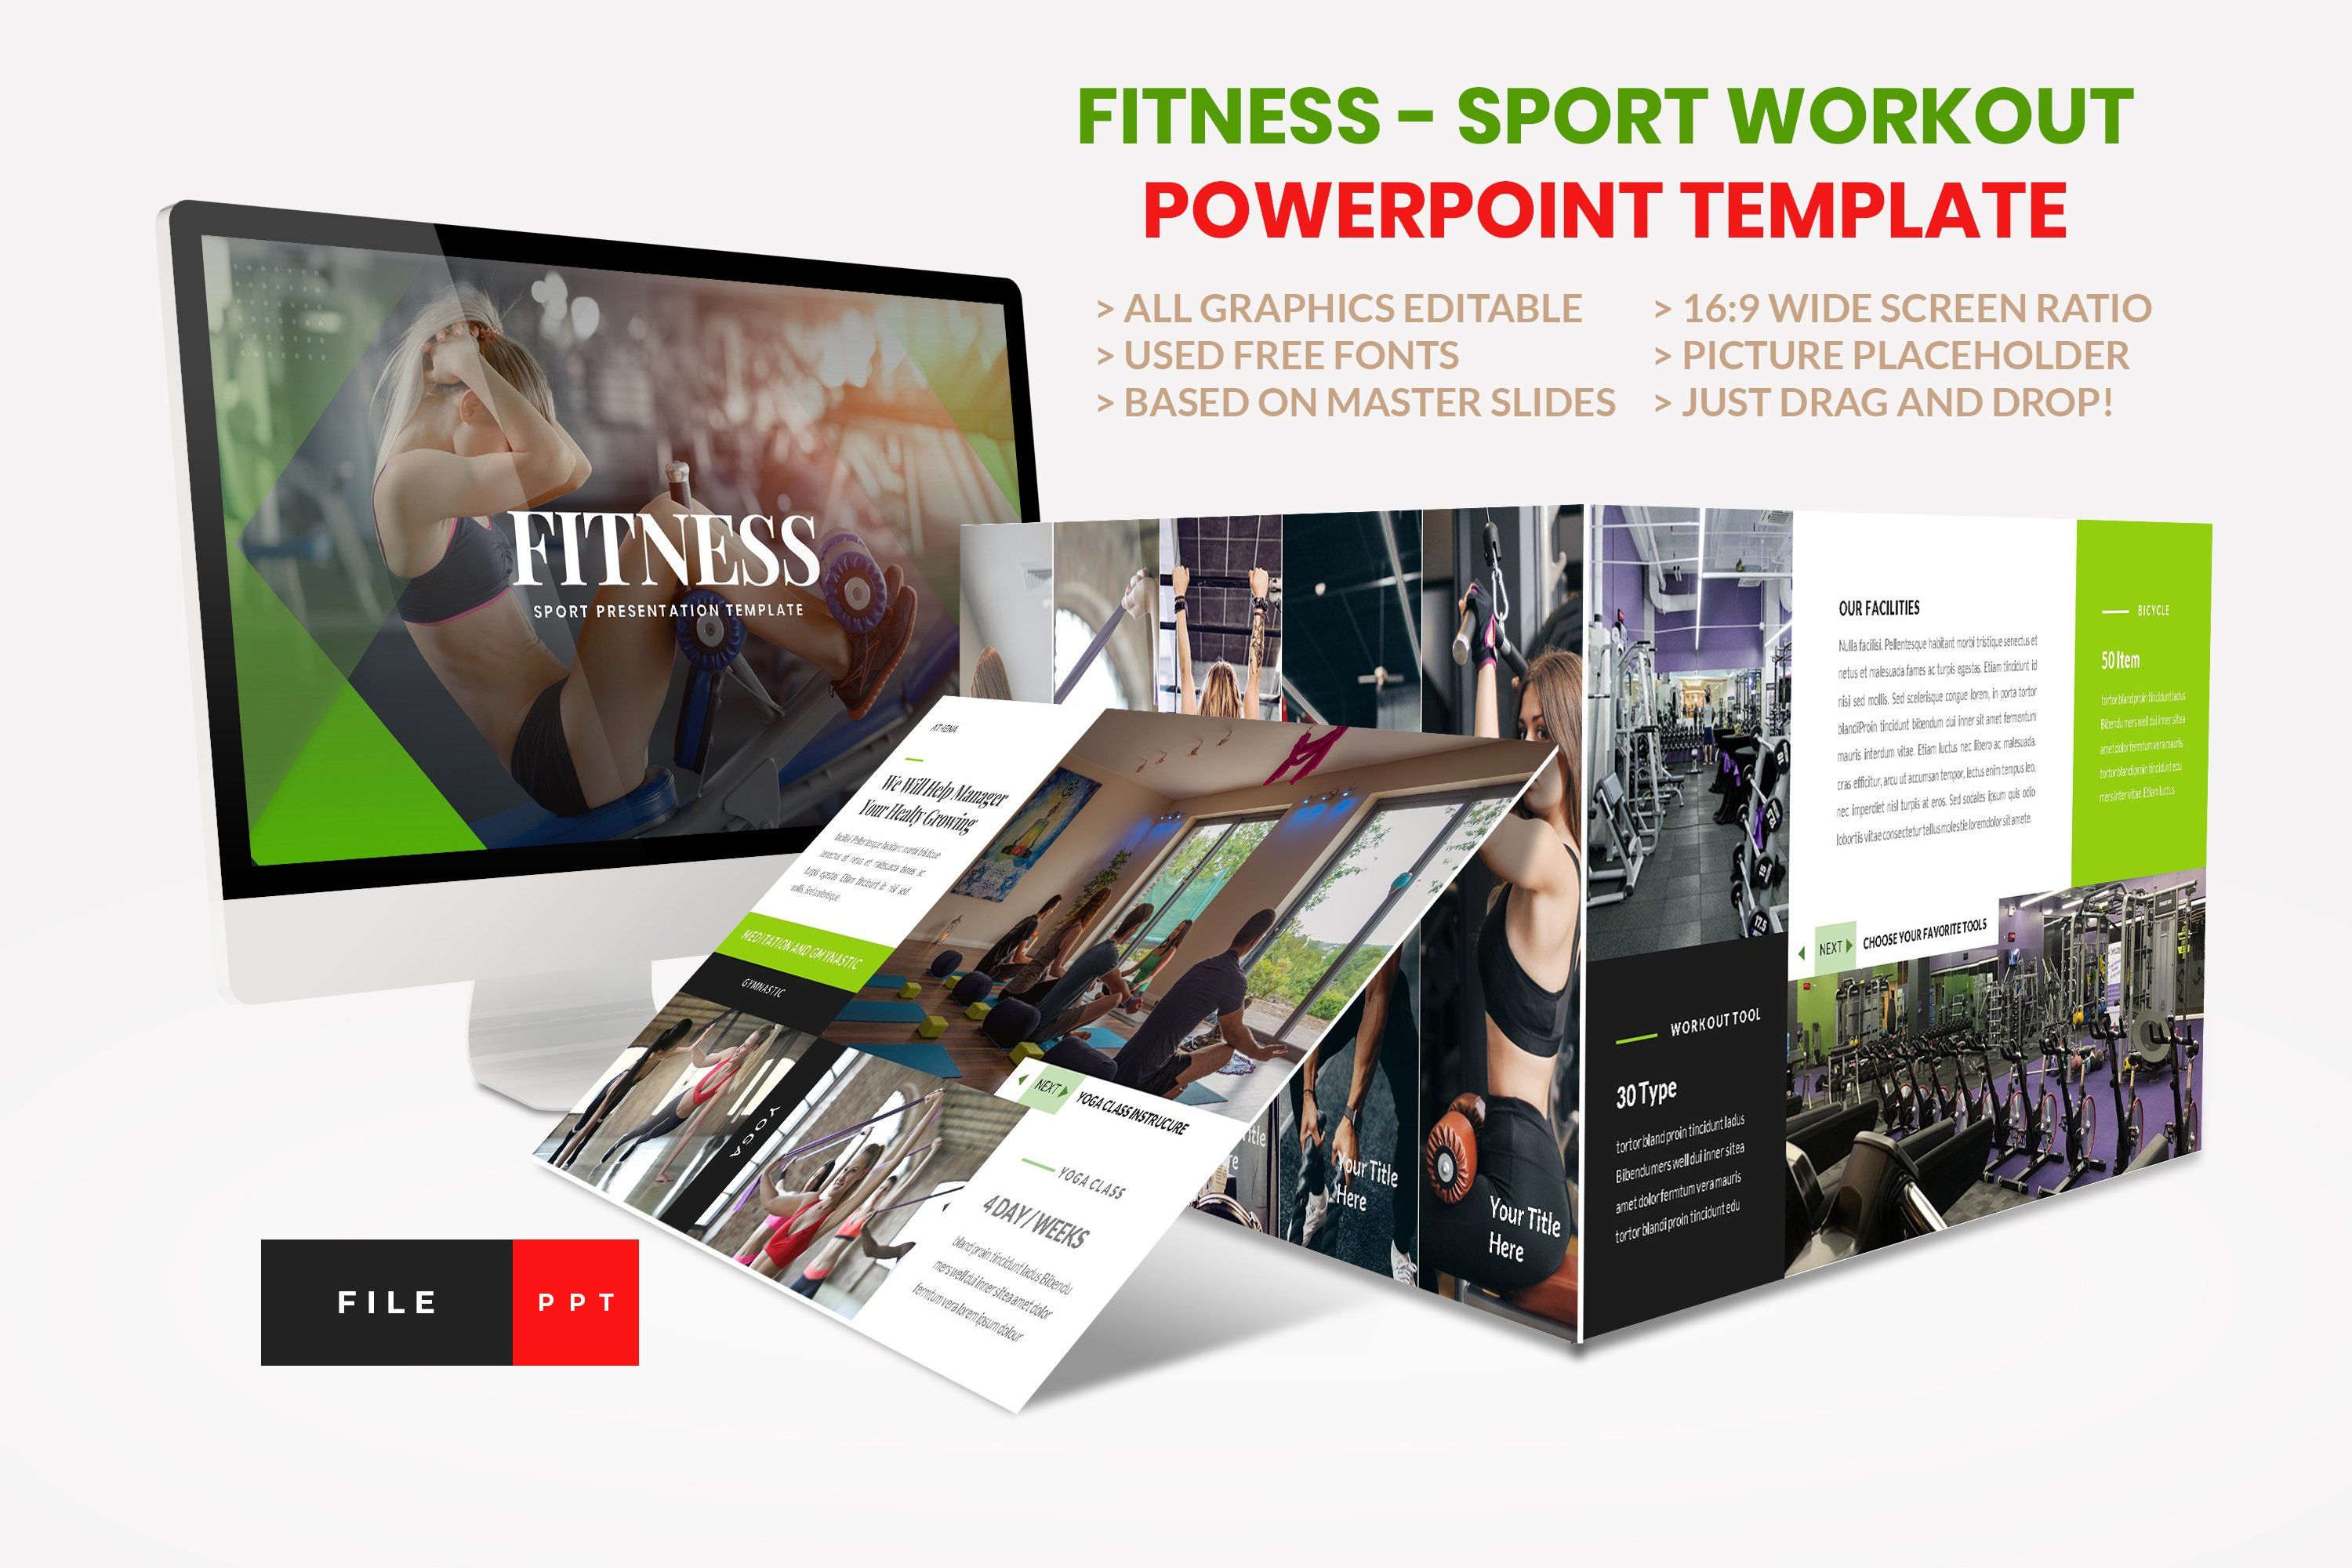 Sport - Fitness Business Workout PowerPoint Template example image 1